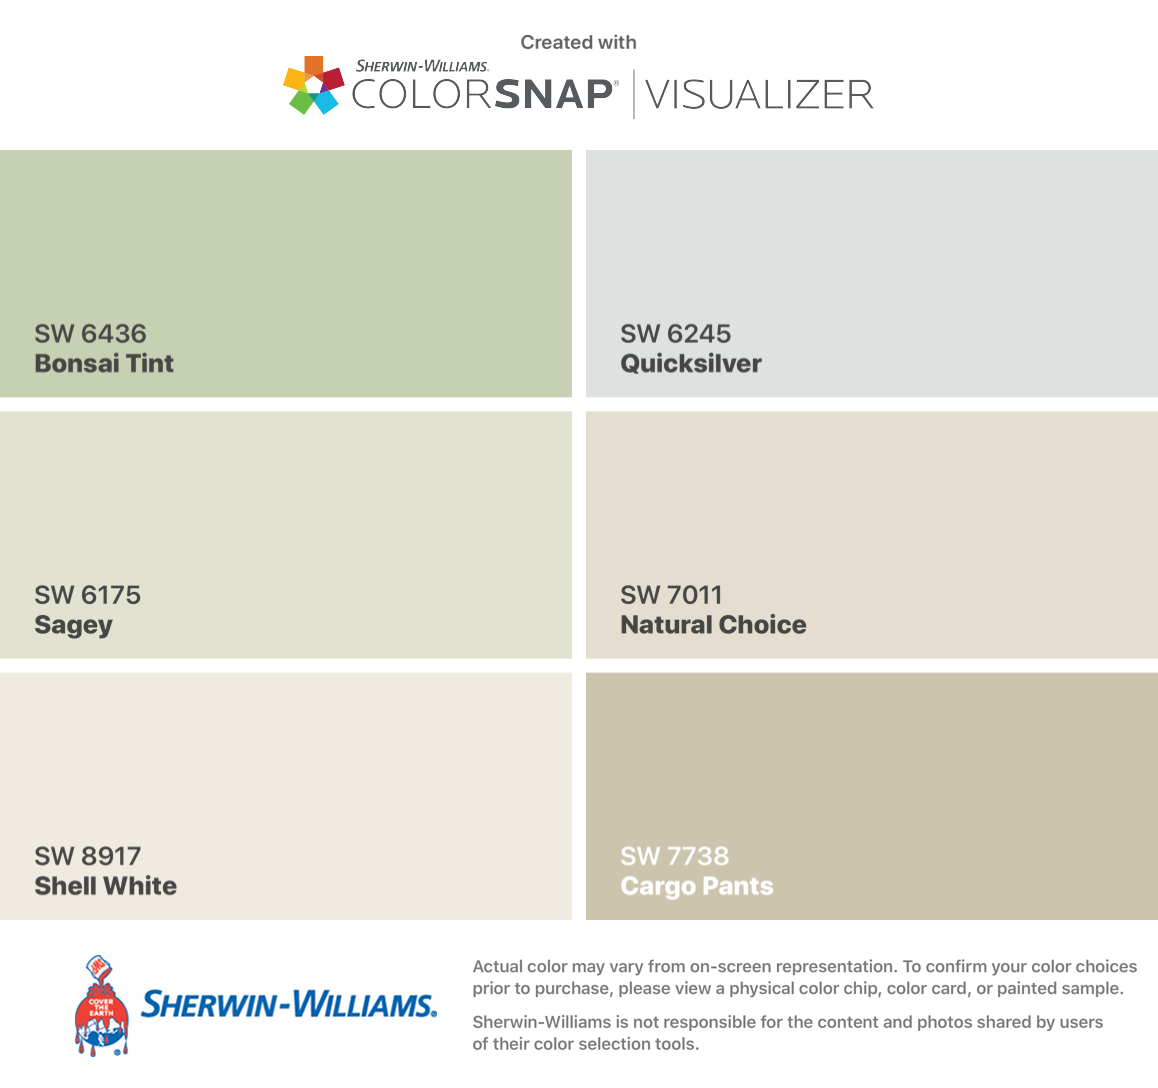 I Found These Colors With Colorsnap Visualizer For Iphone By Sherwin Williams Bonsai Tint Sw 64 Paint Colors For Home Agreeable Gray Sherwin Williams Colors